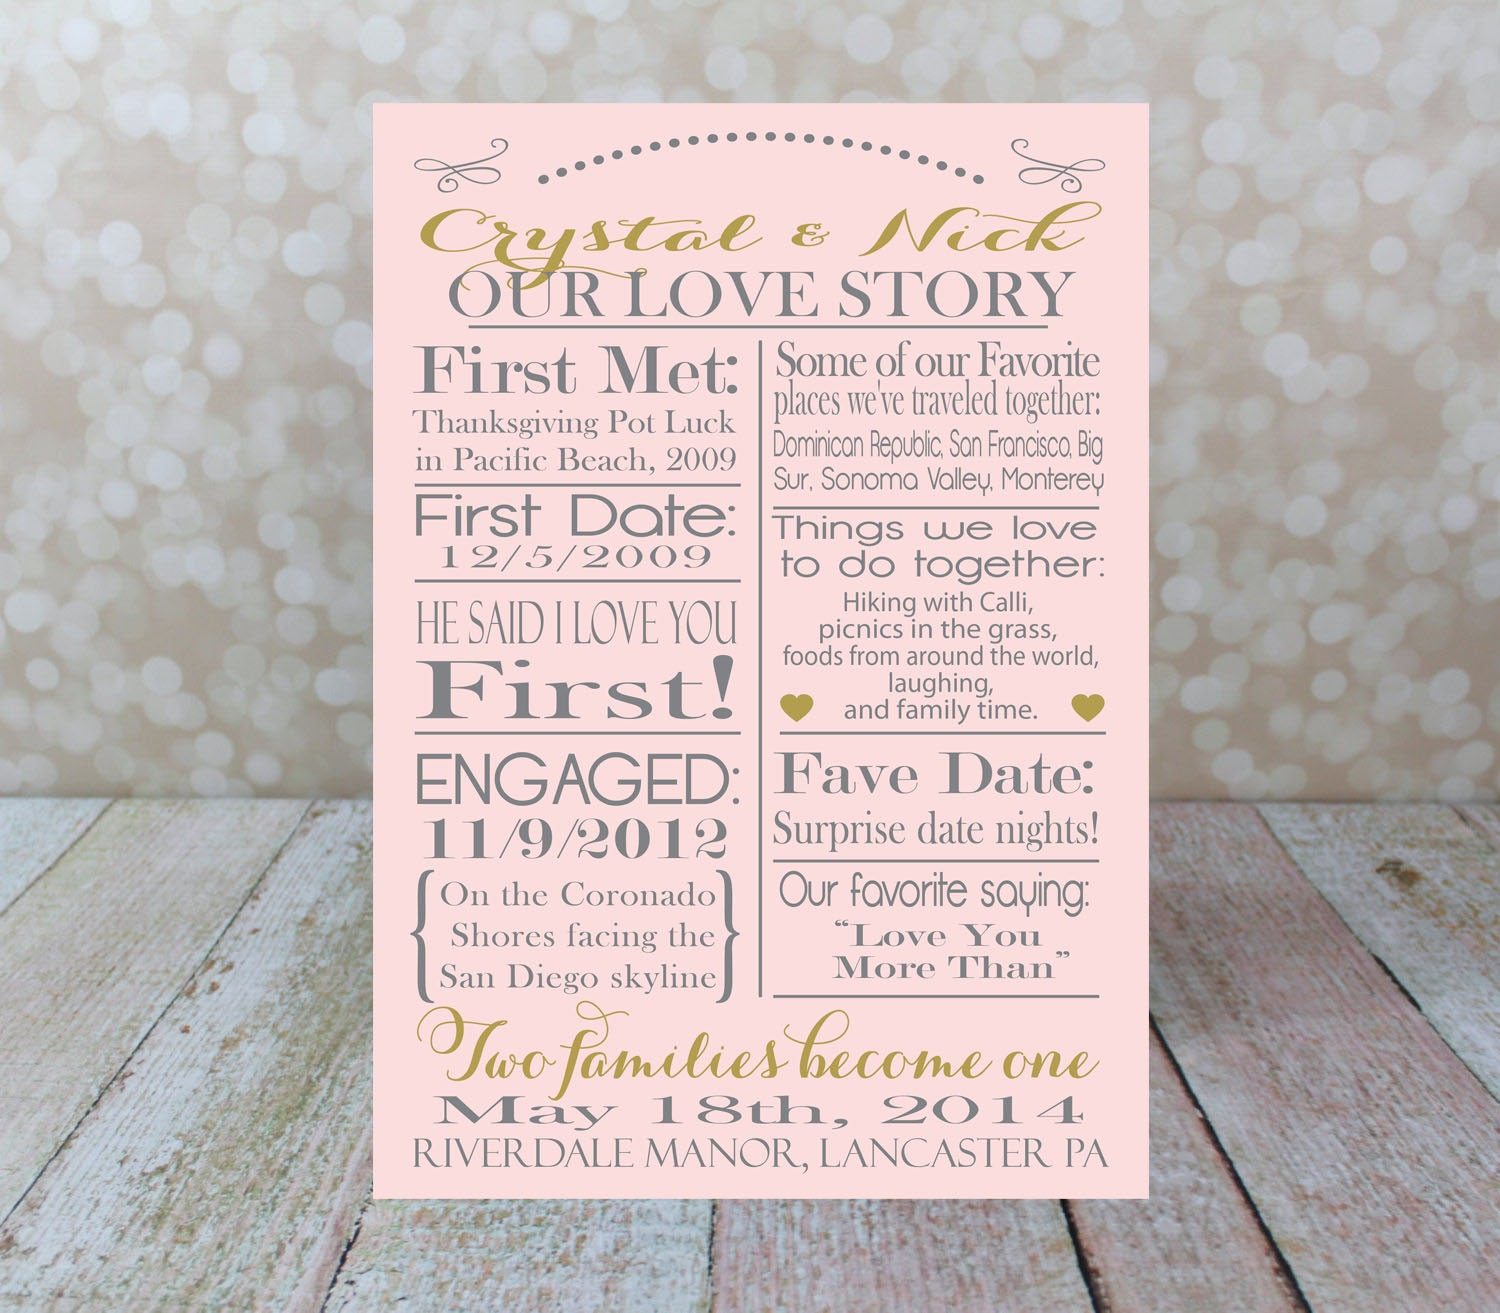 Our Love Story Wedding Idea: Custom Our Love Story Wedding Typography Poster Personalized